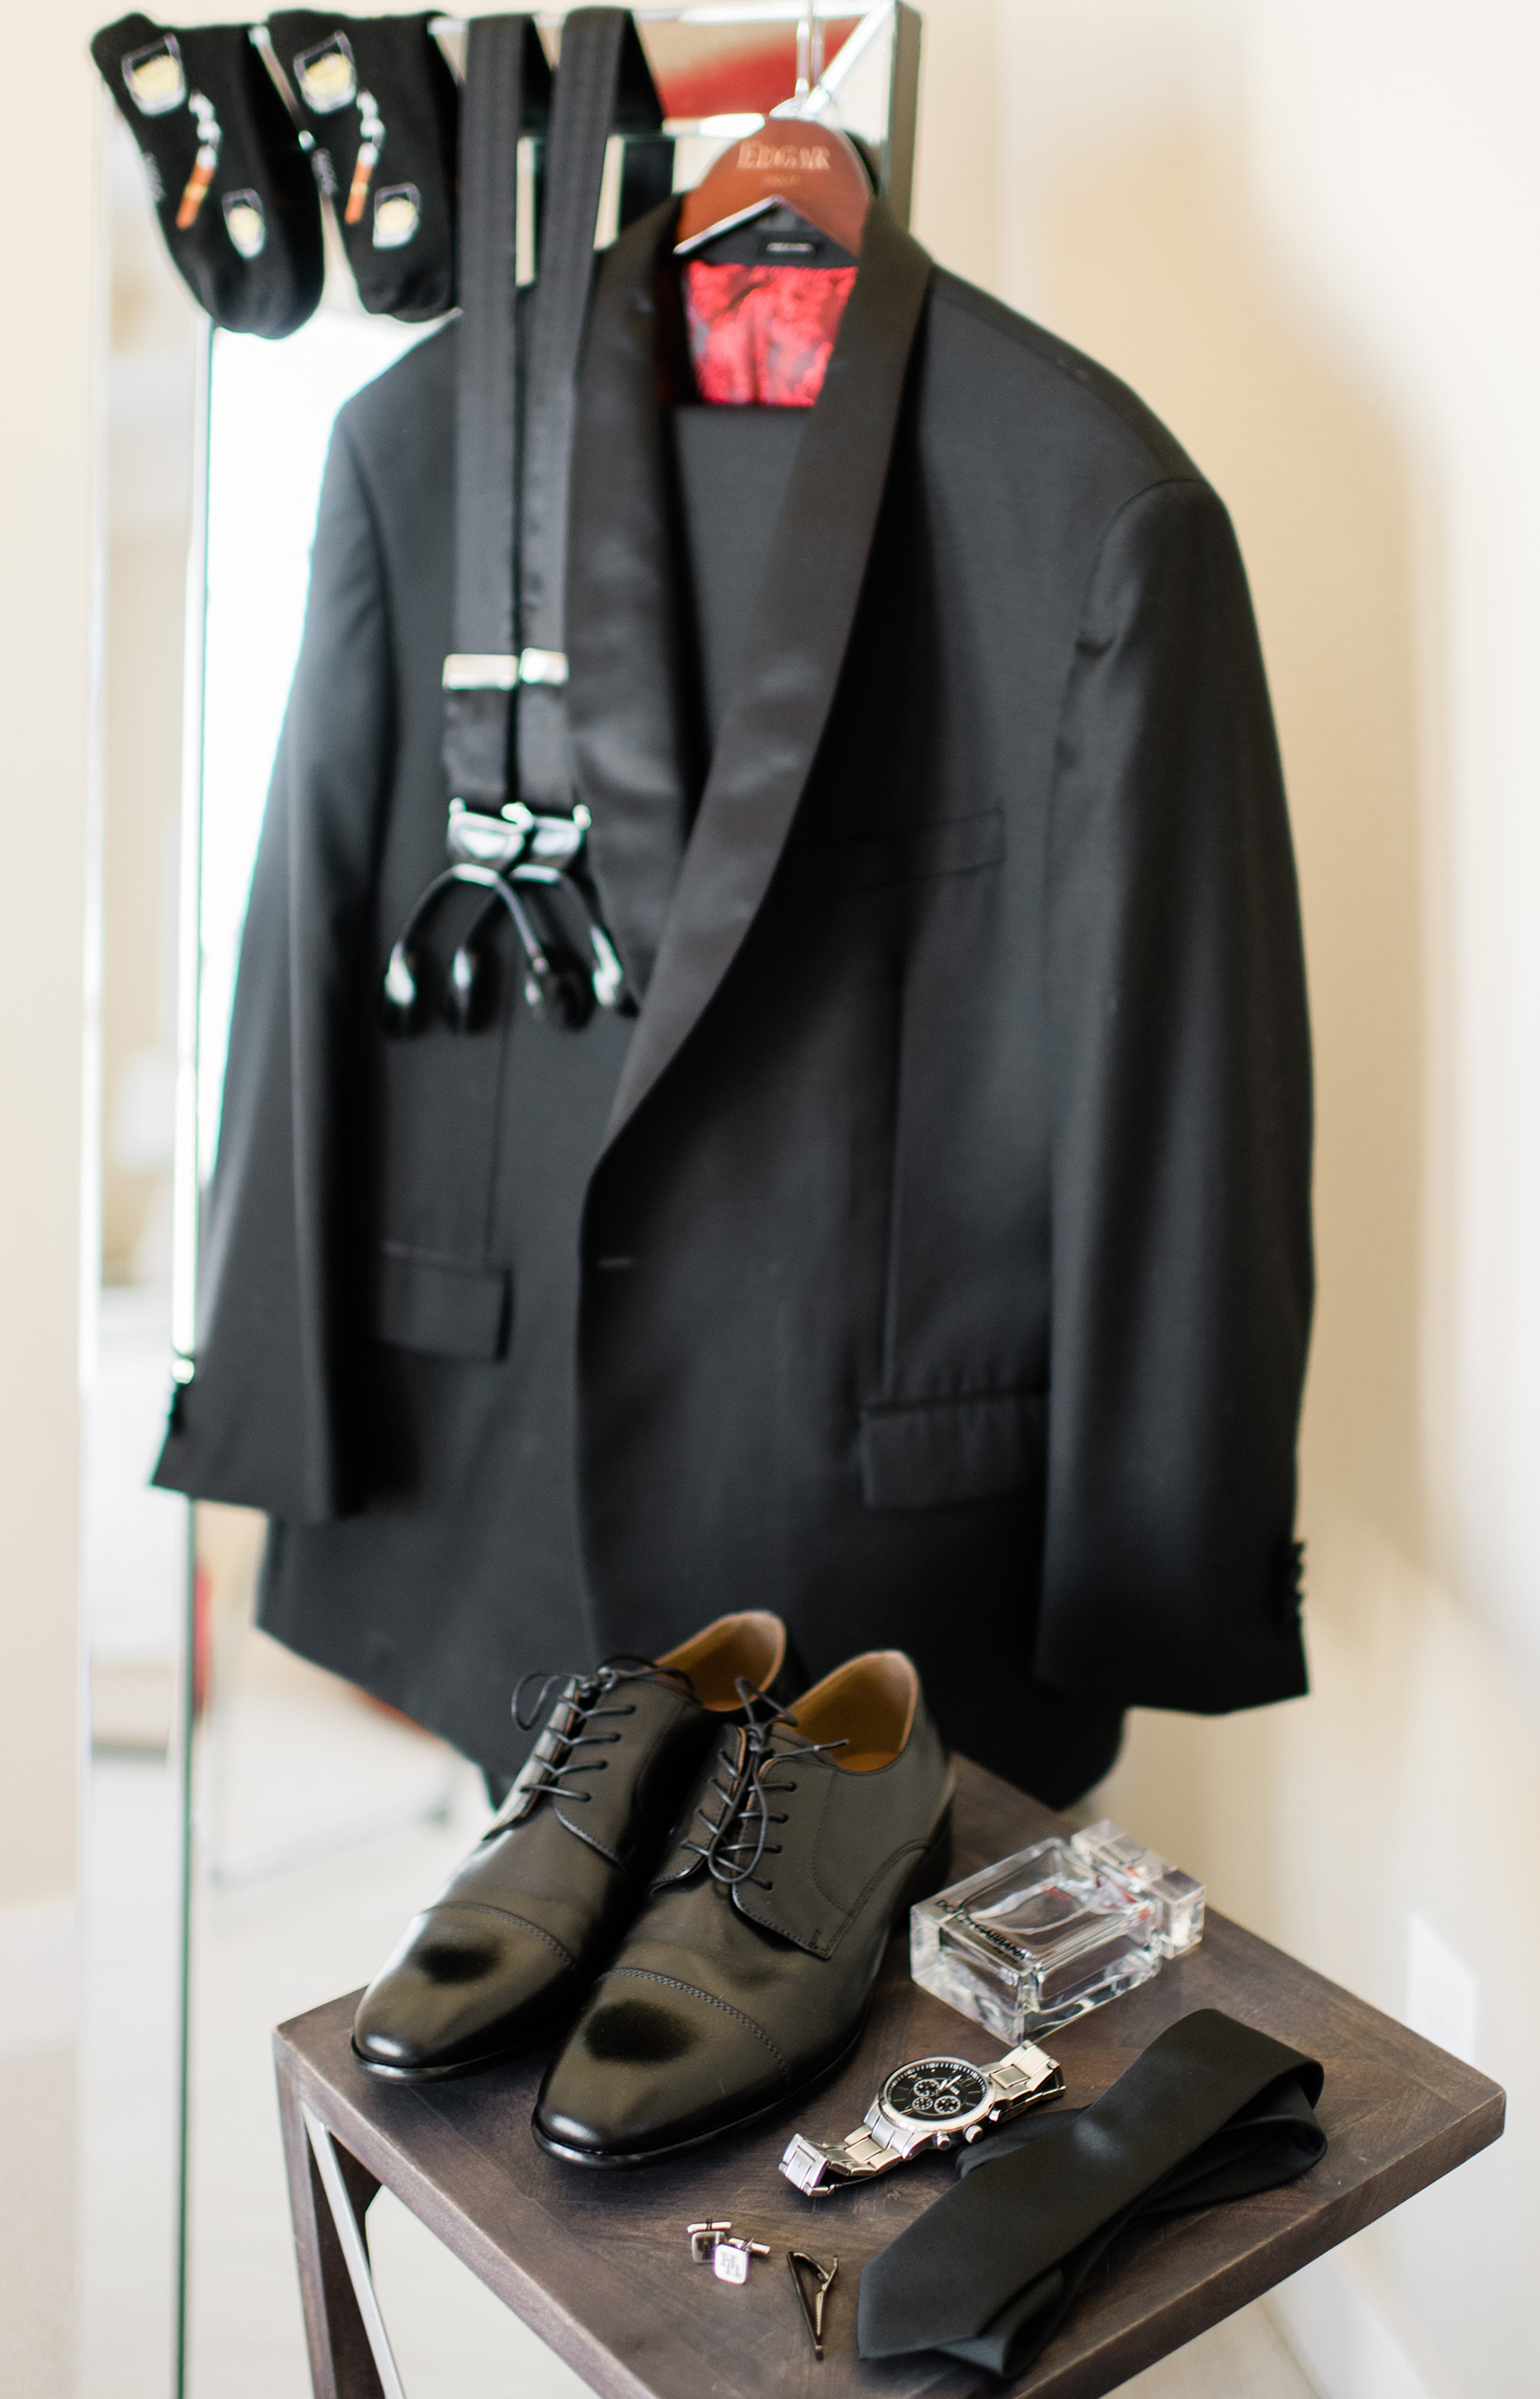 The groom's accessories and suit are set up for him to get dressed.